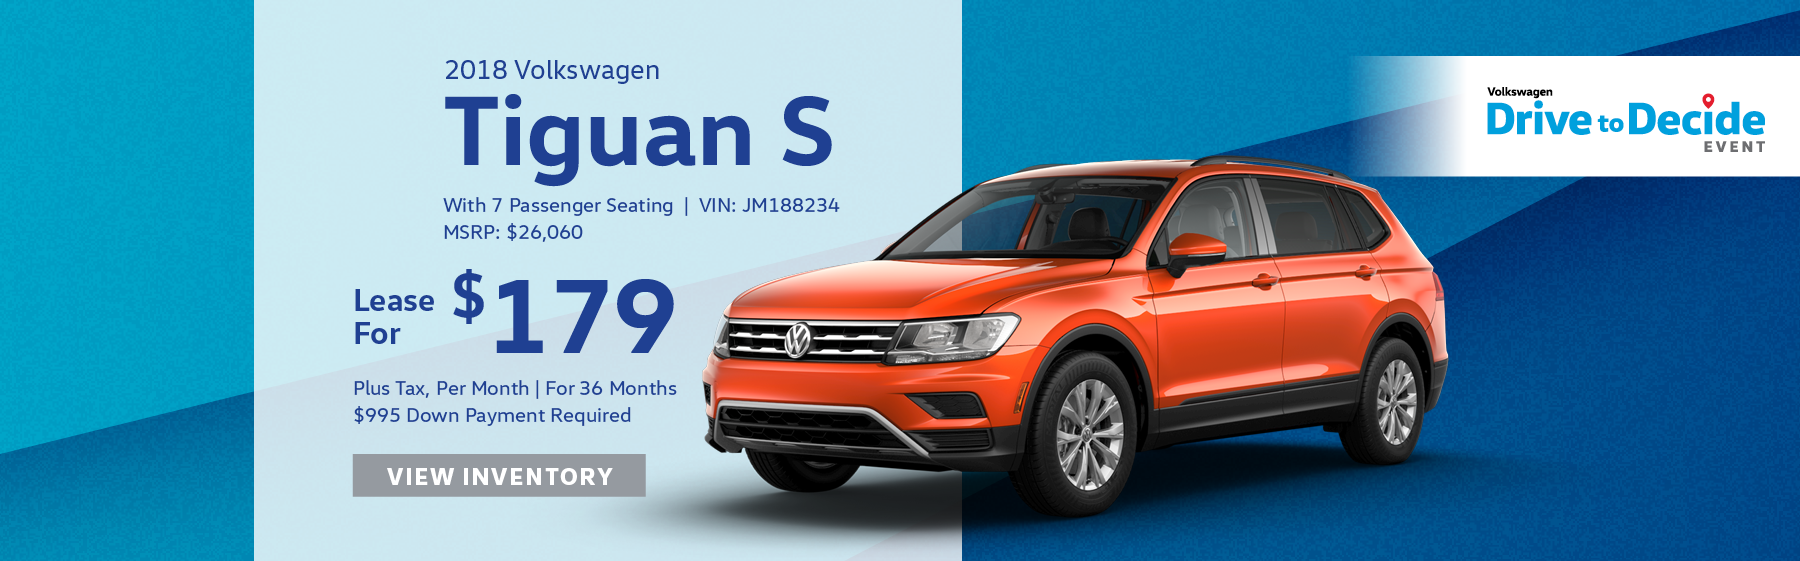 Lease the 2018 Volkswagen Tiguan S for $179 plus tax for 36 months. $995 Down payment required.